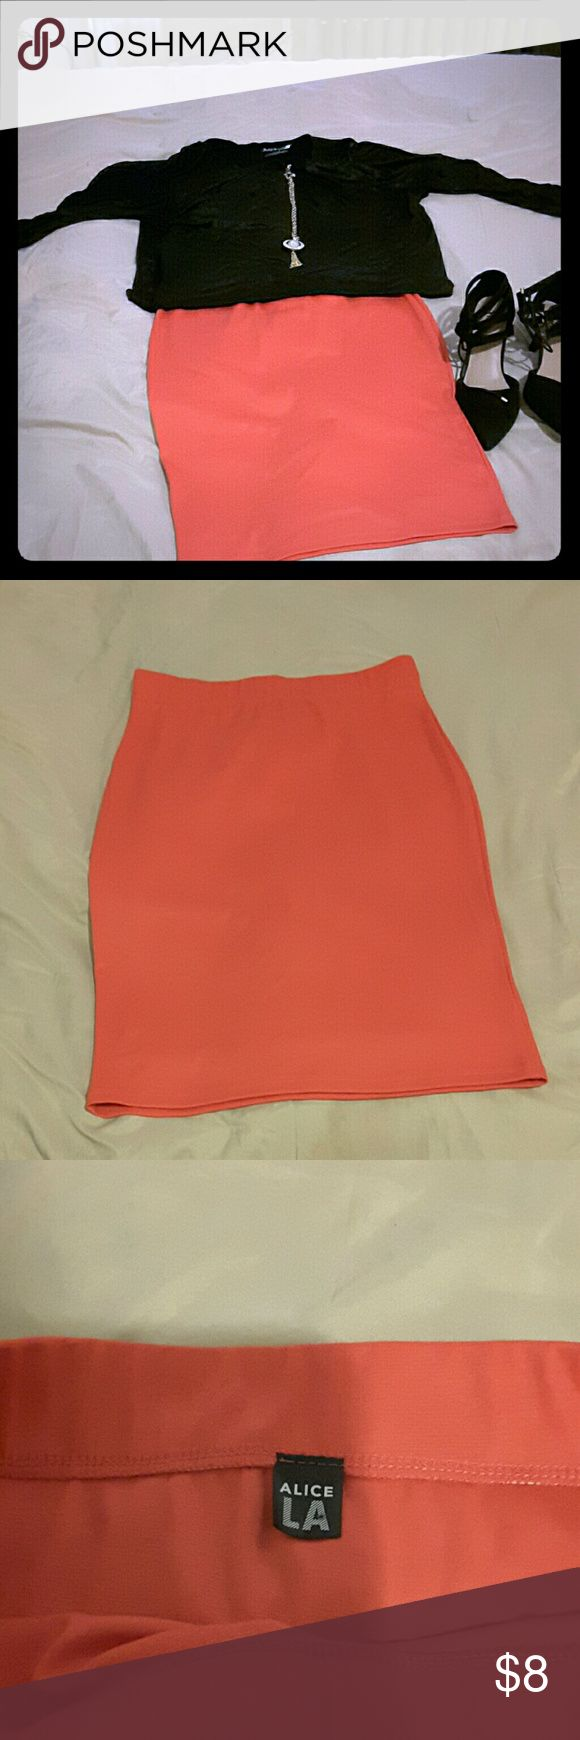 Coral pencil  skirt Cute Coral pencil skirt  sits right in the middle of my knees. And I am 5'6. Has an elastic waste band Stretchy material Skirts Pencil